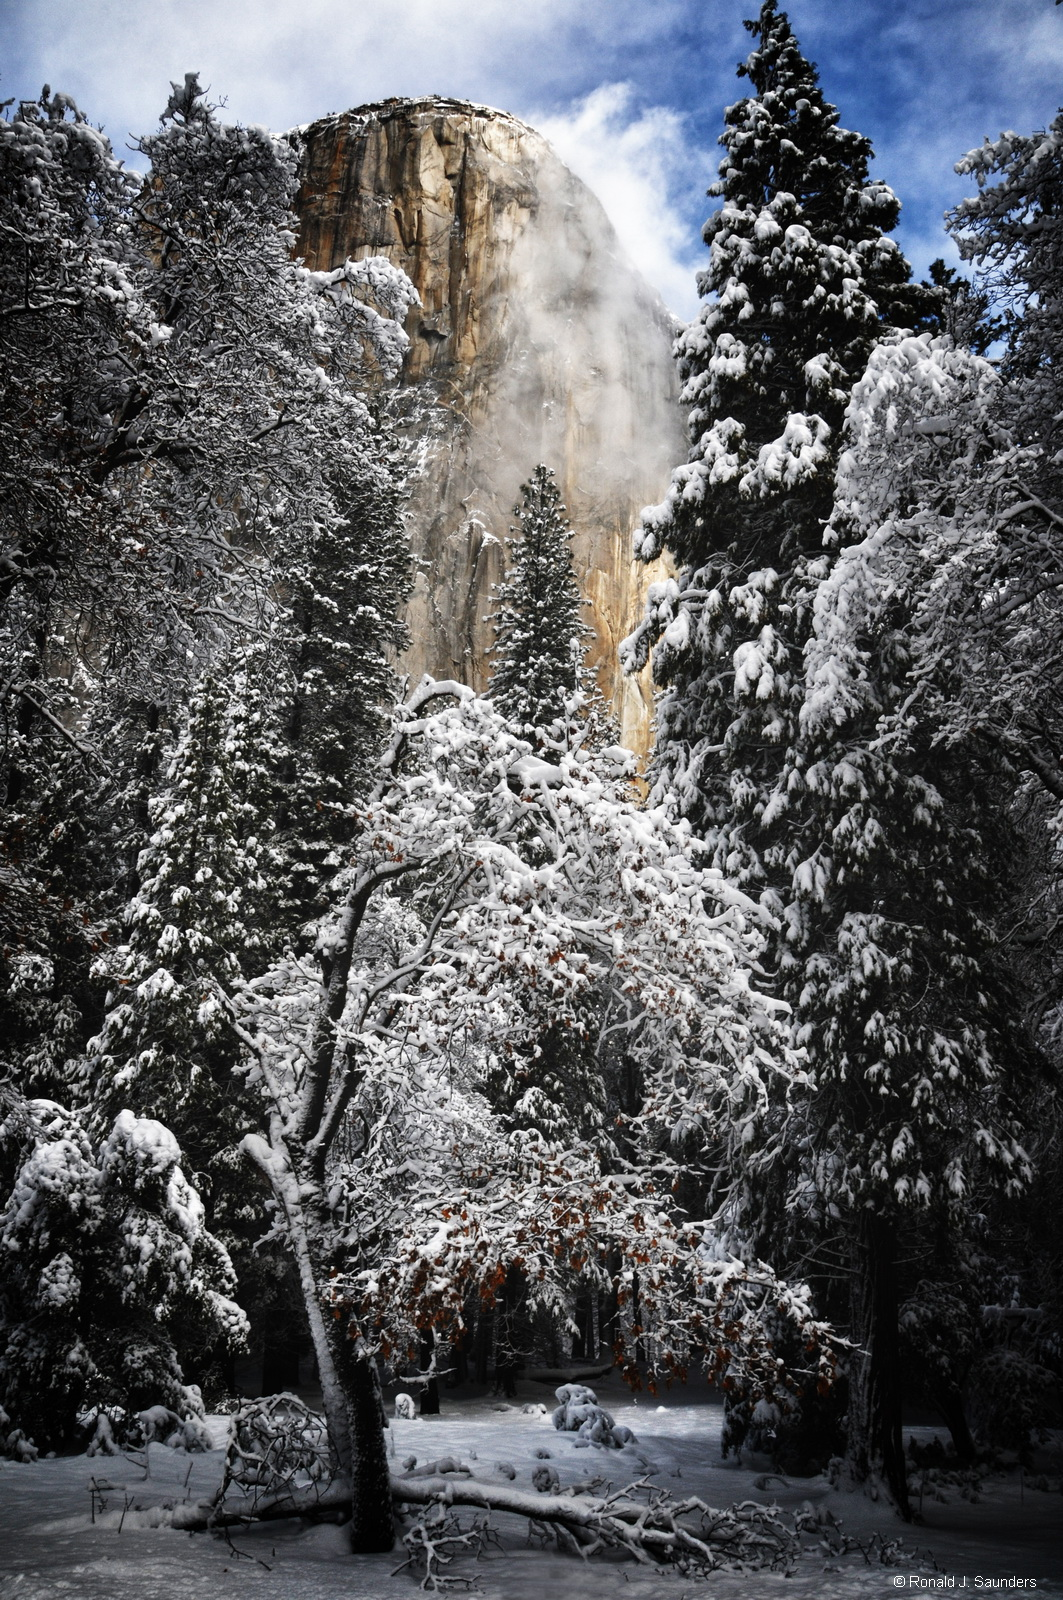 My 2013 Christmas card featured this image with the following prose. A tree dappled with fresh snow endures another winter...